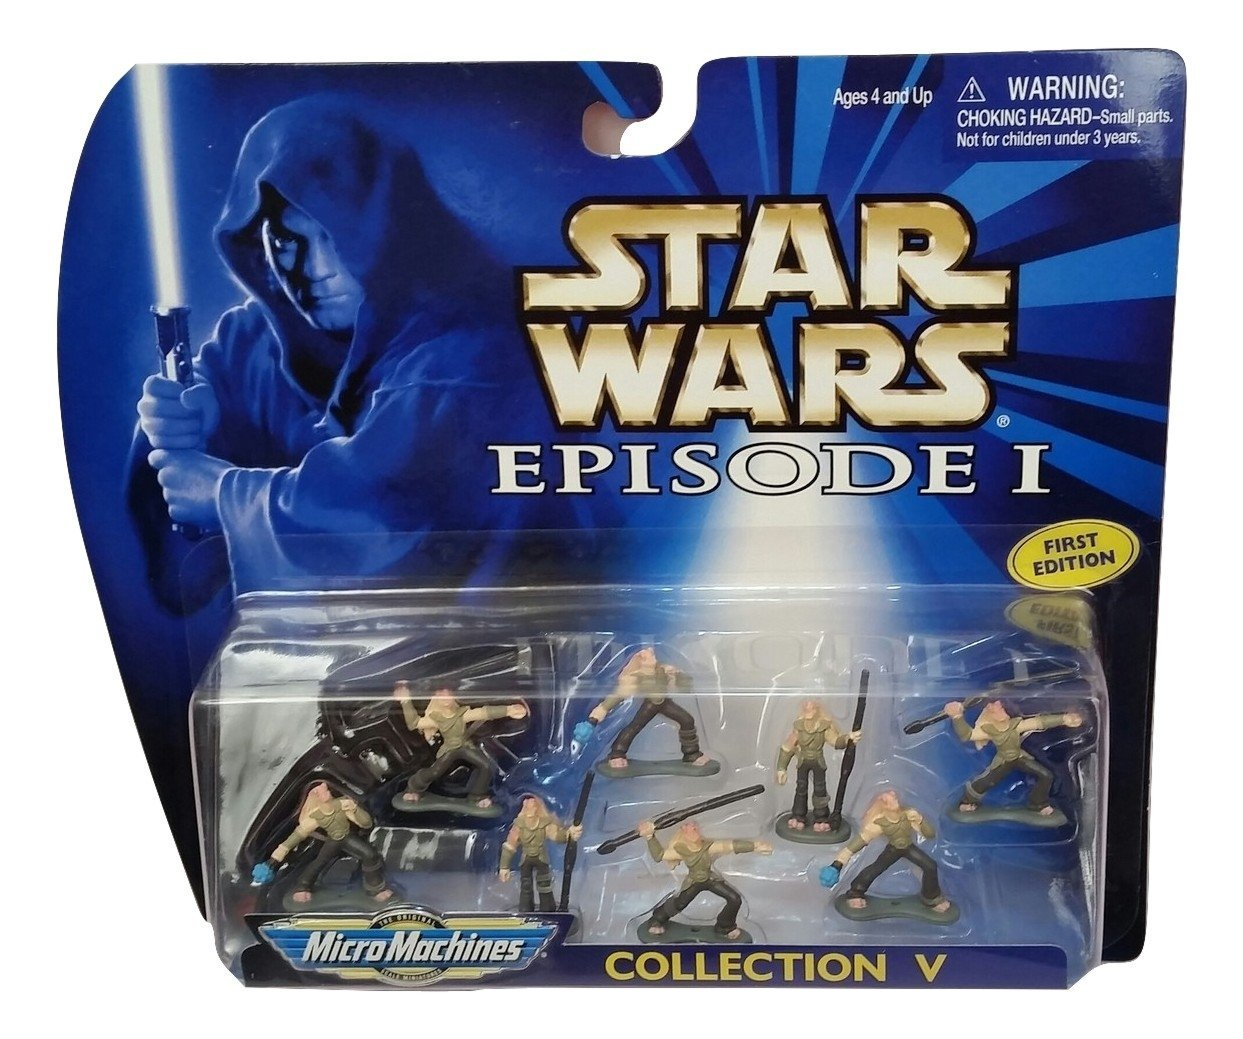 Micromachines Star Wars Episode 1 Collection V (5) by Galoob